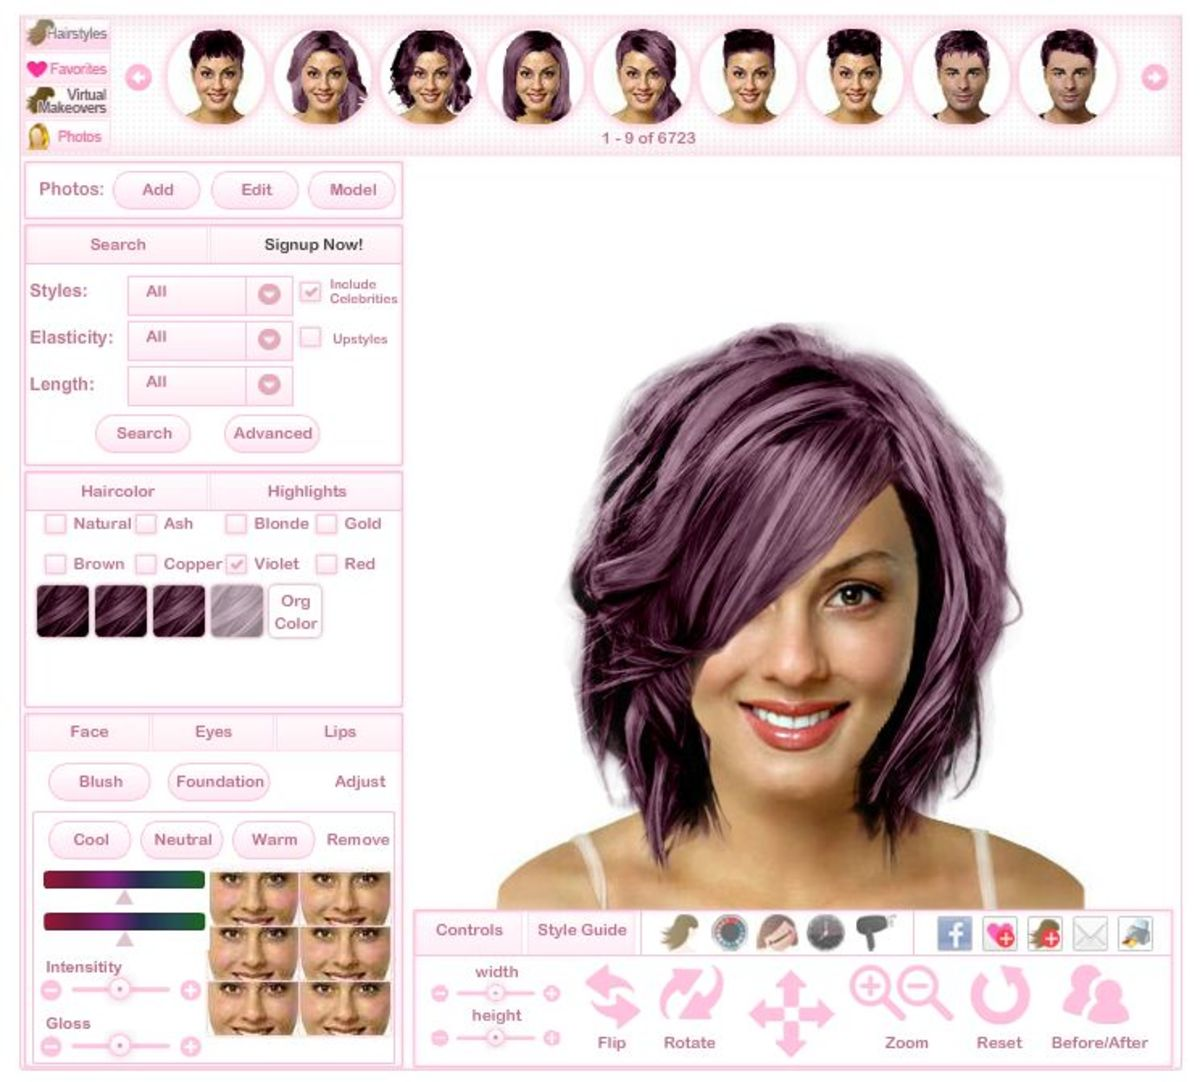 Pleasant Kelly Osbourne Hairstyles For Women With Fat Face To Flatter Short Hairstyles Gunalazisus